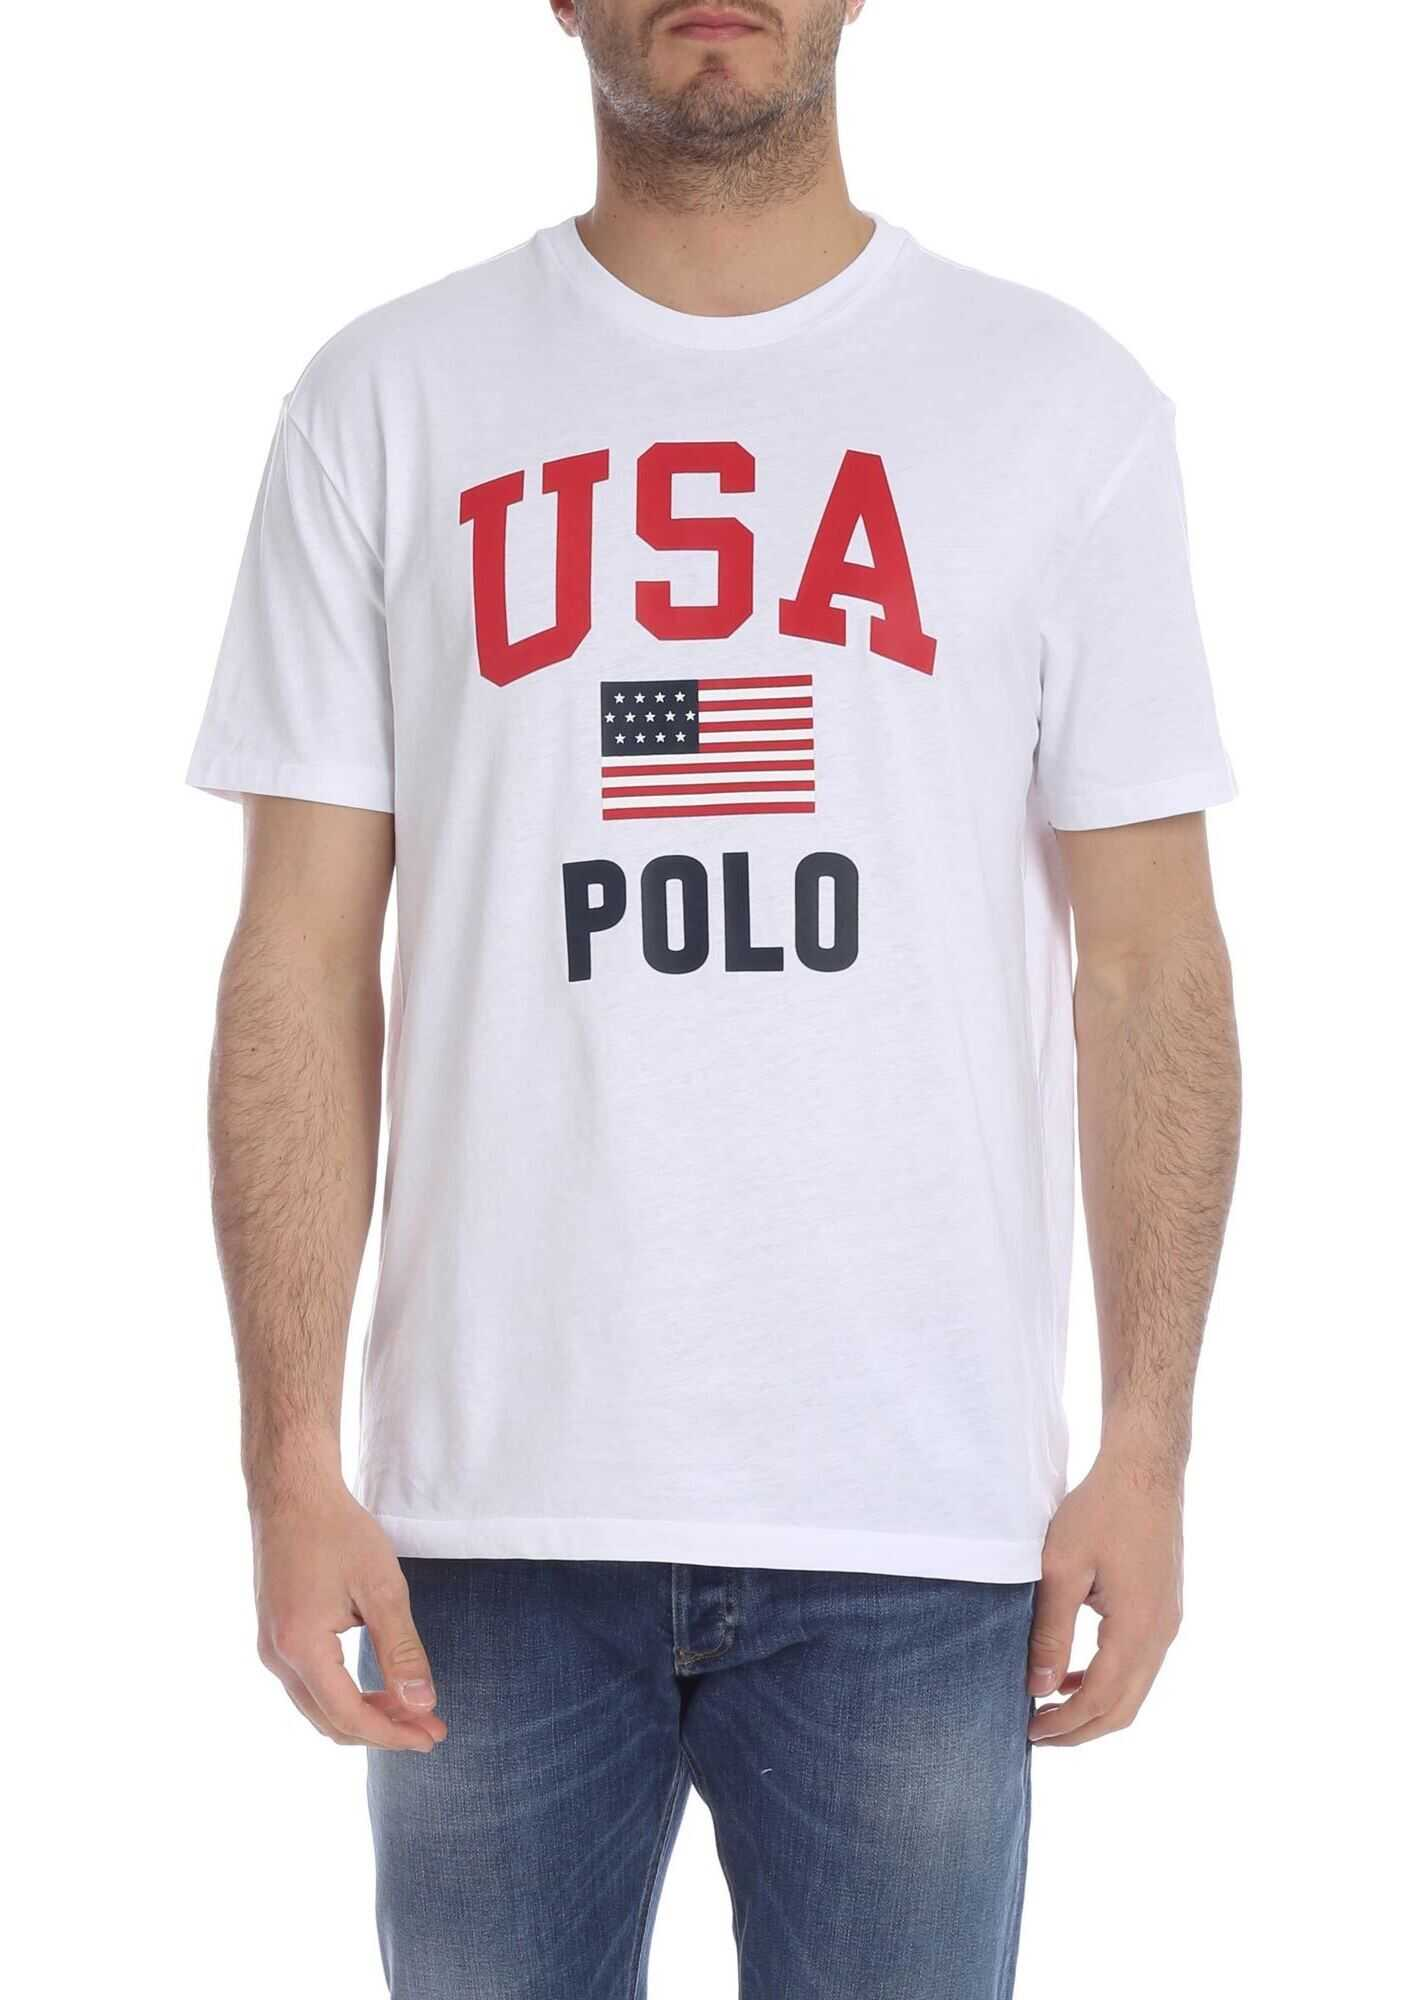 Usa Polo T-Shirt In White